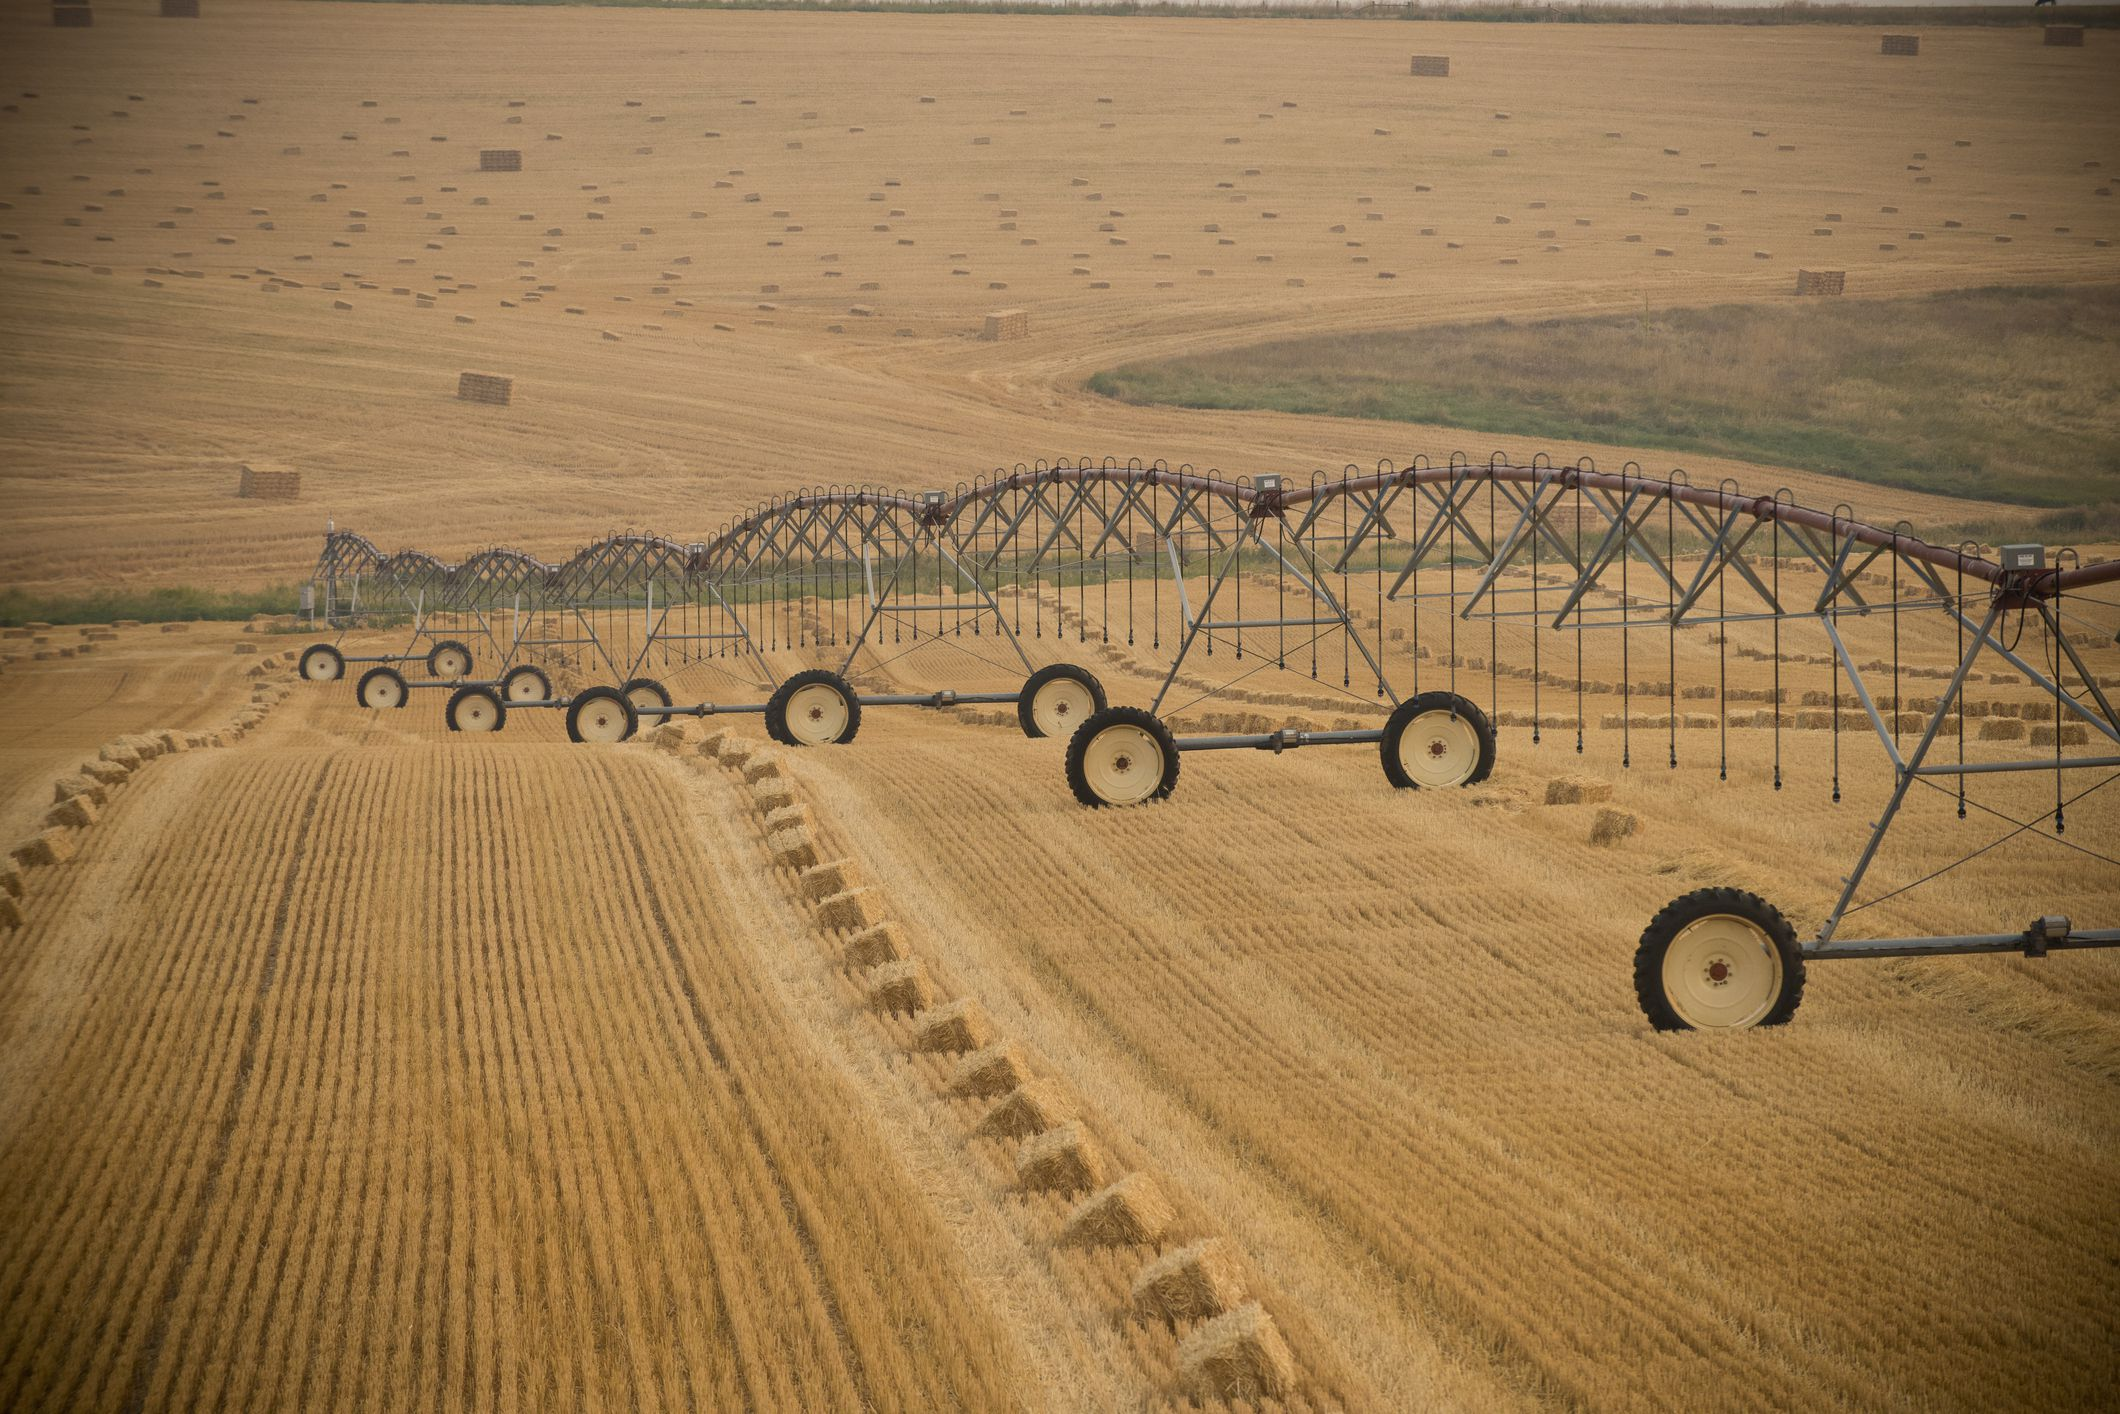 History Of American Agriculture Farm Machinery And Technology